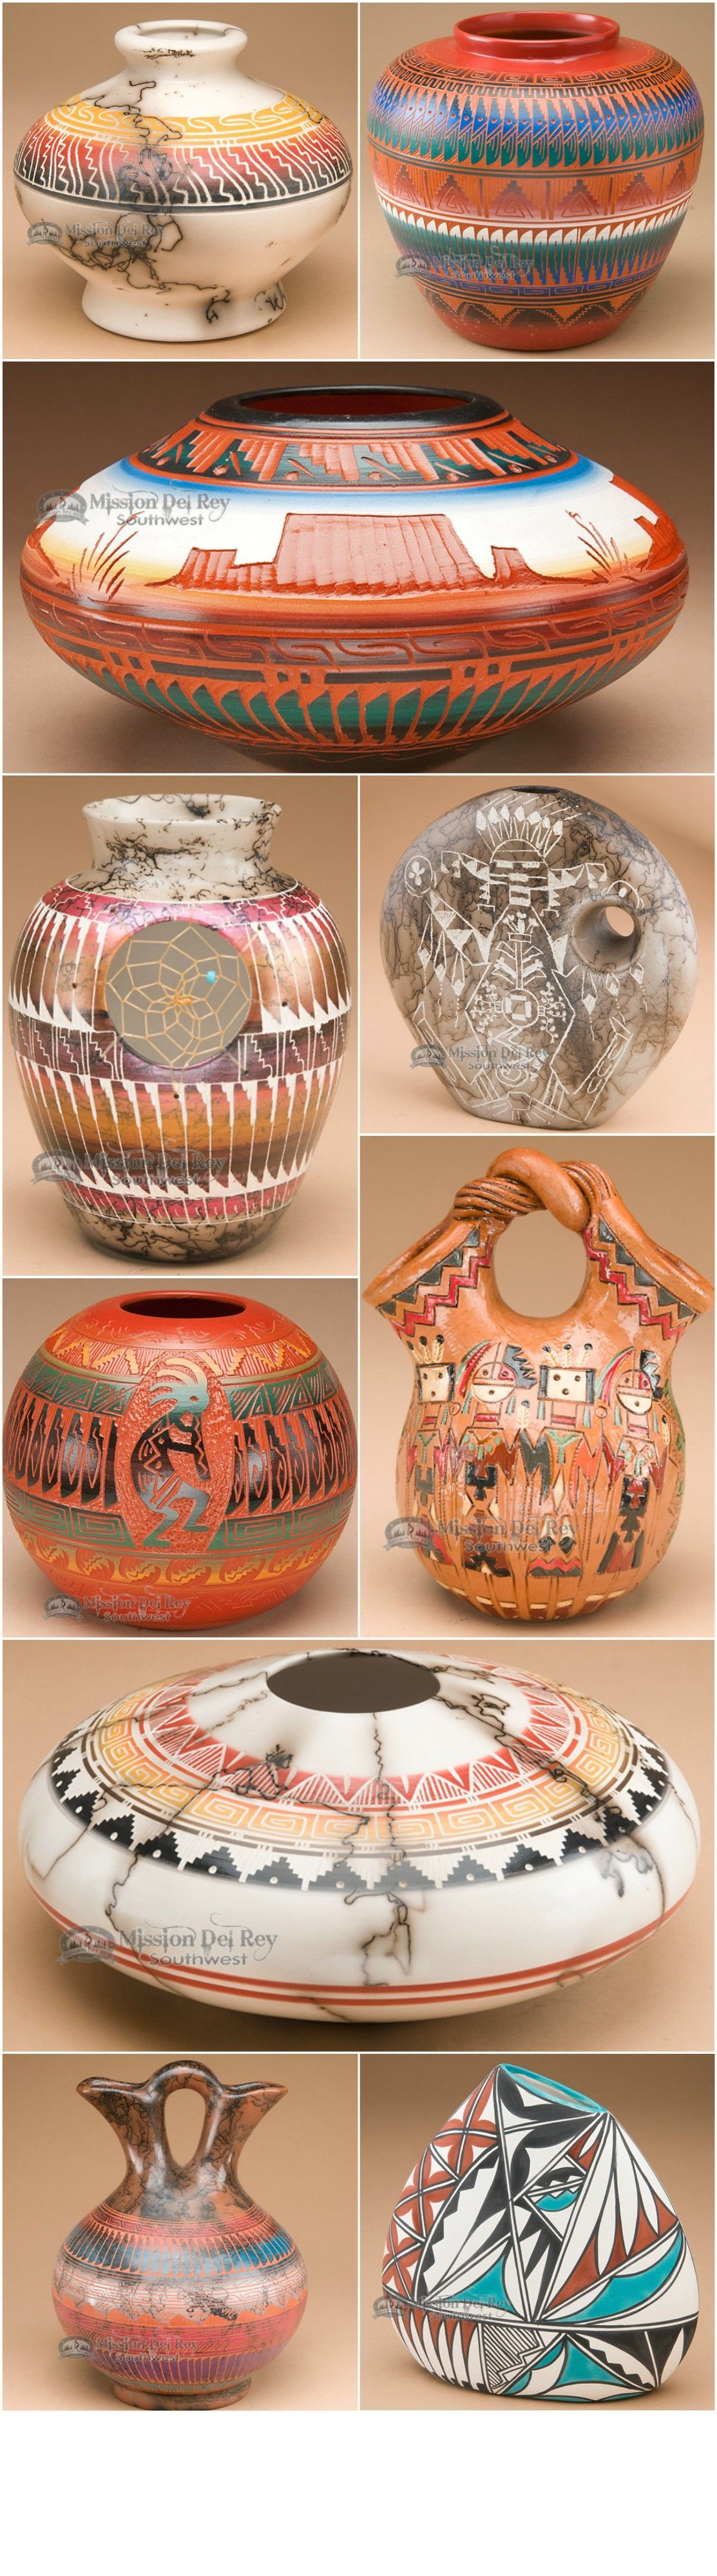 vase market coupon code of 26 vase market coupon the weekly world regarding american indian pottery is very popular among collectors of